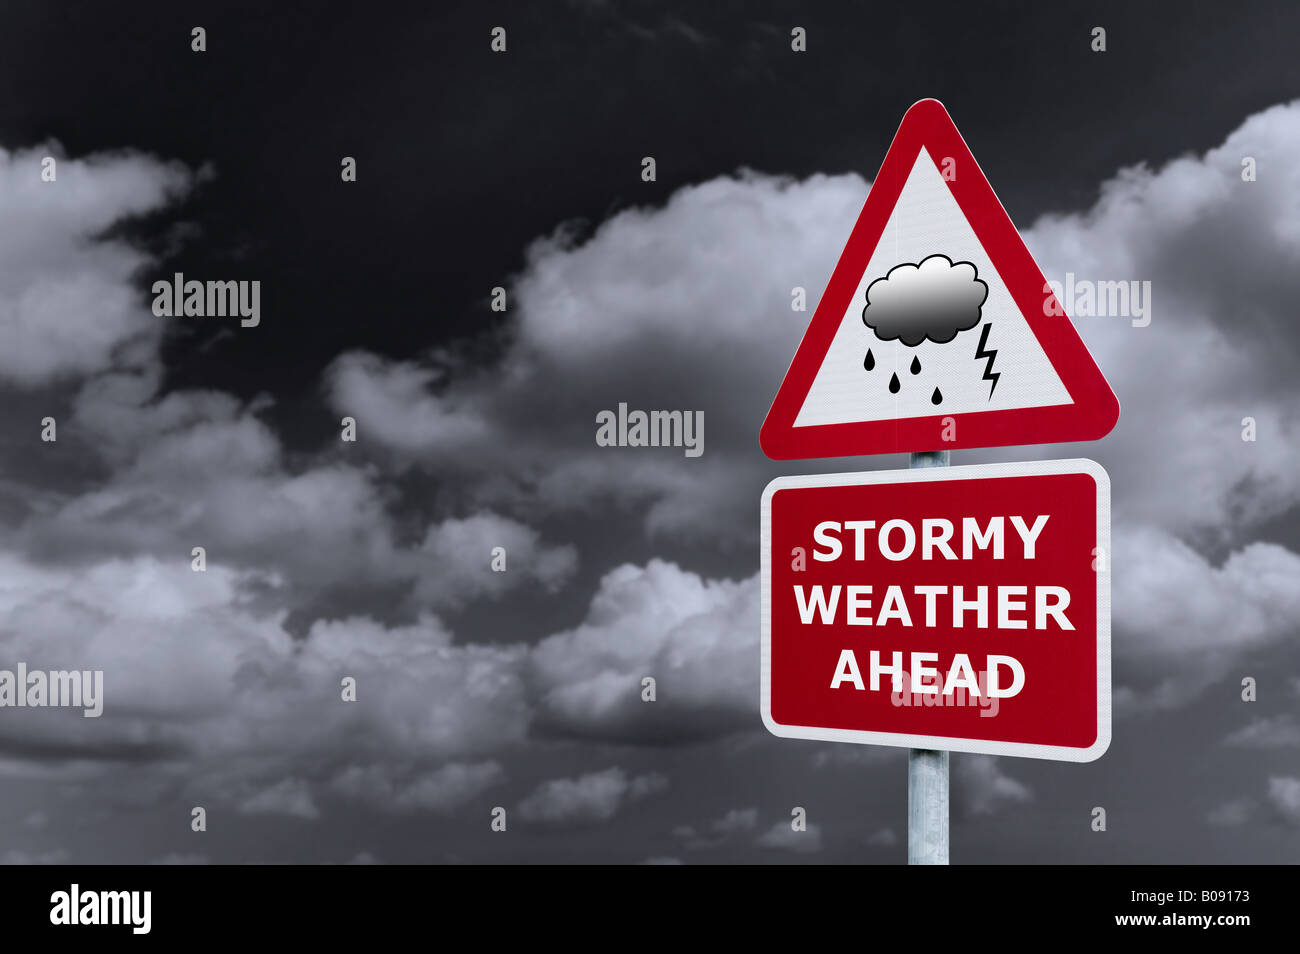 Concept image of a signpost with Stormy Weather Ahead against a dark cloudy sky - Stock Image